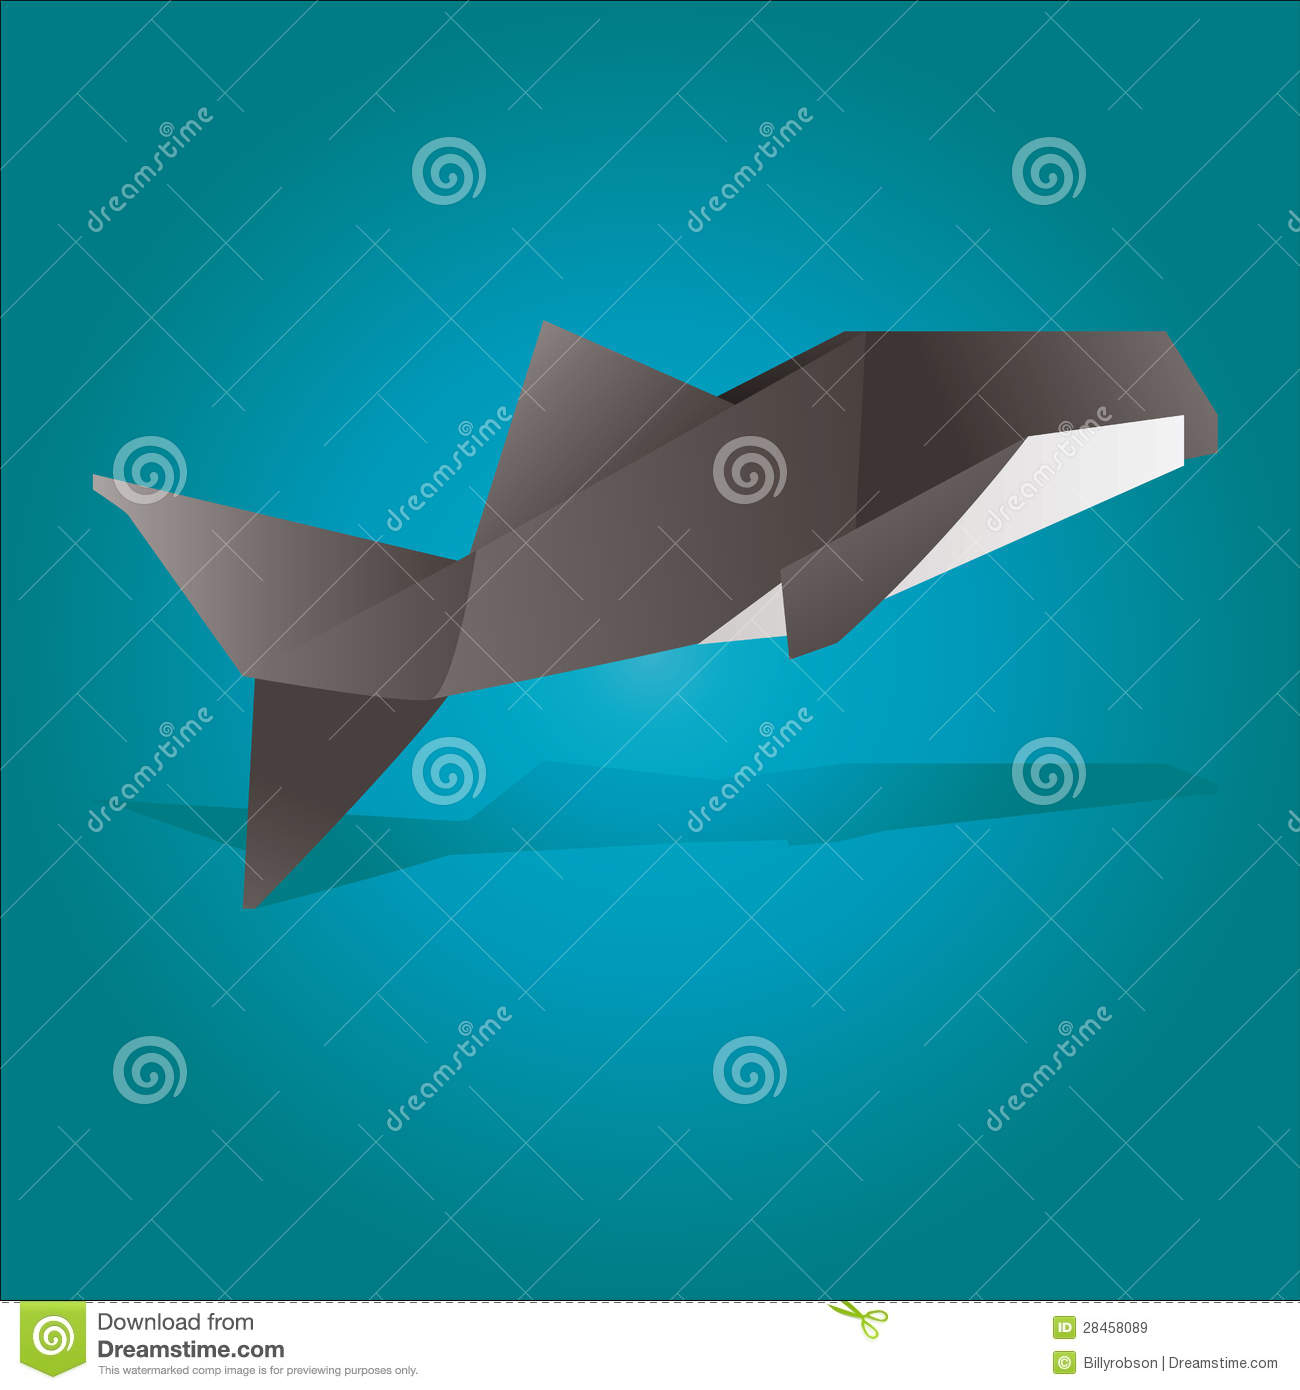 Baleia De Assassino De Origami Imagens de Stock Royalty ... - photo#28